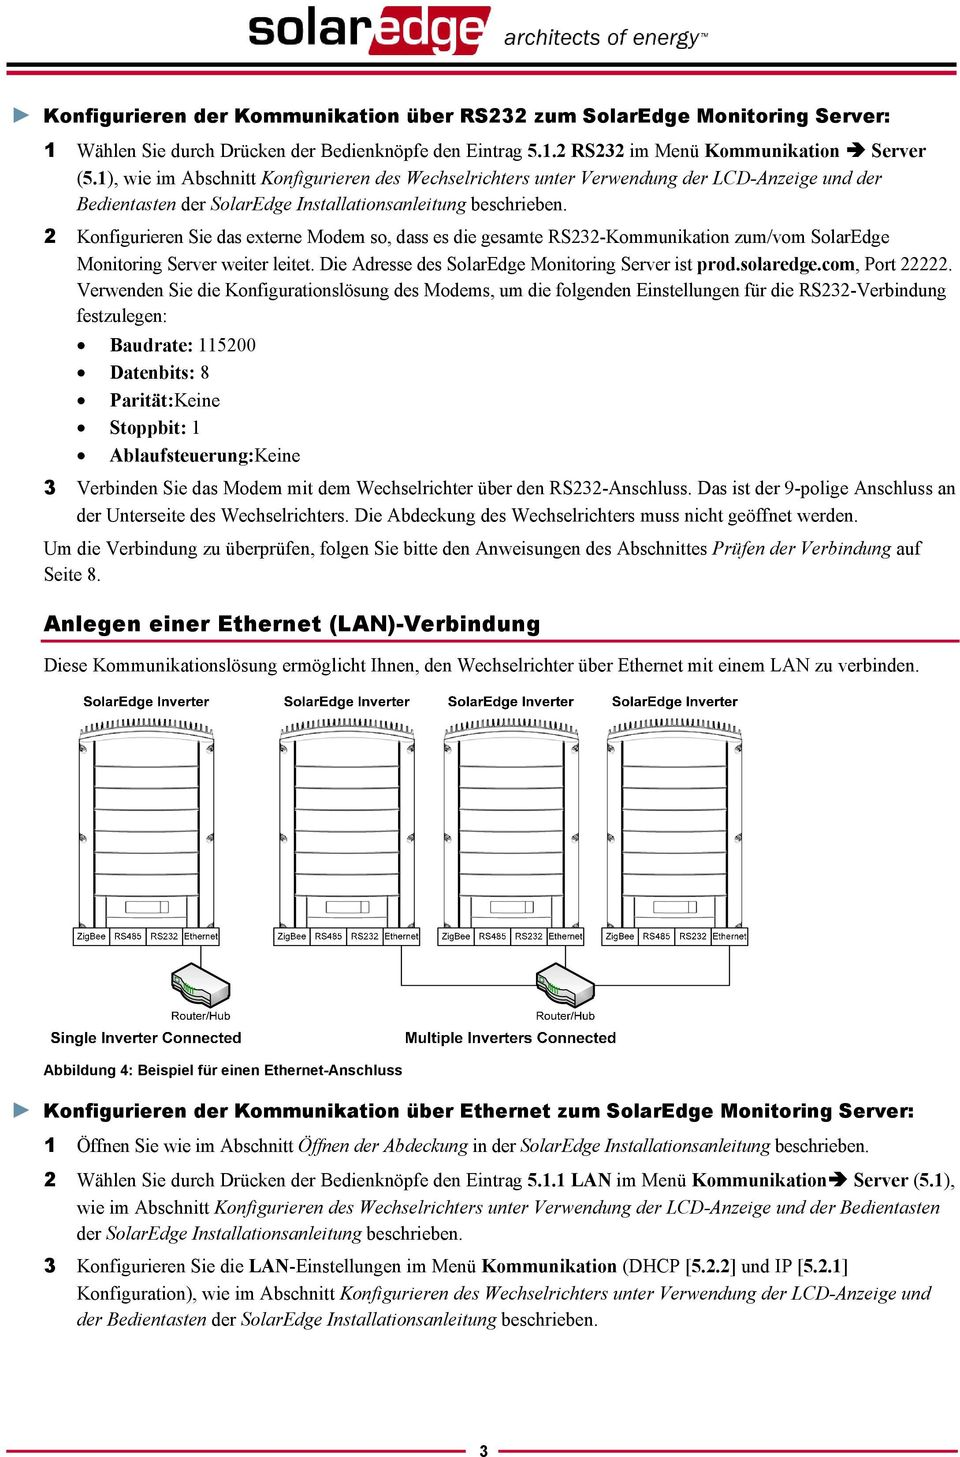 2 Konfigurieren Sie das externe Modem so, dass es die gesamte RS232-Kommunikation zum/vom SolarEdge Monitoring Server weiter leitet. Die Adresse des SolarEdge Monitoring Server ist prod.solaredge.